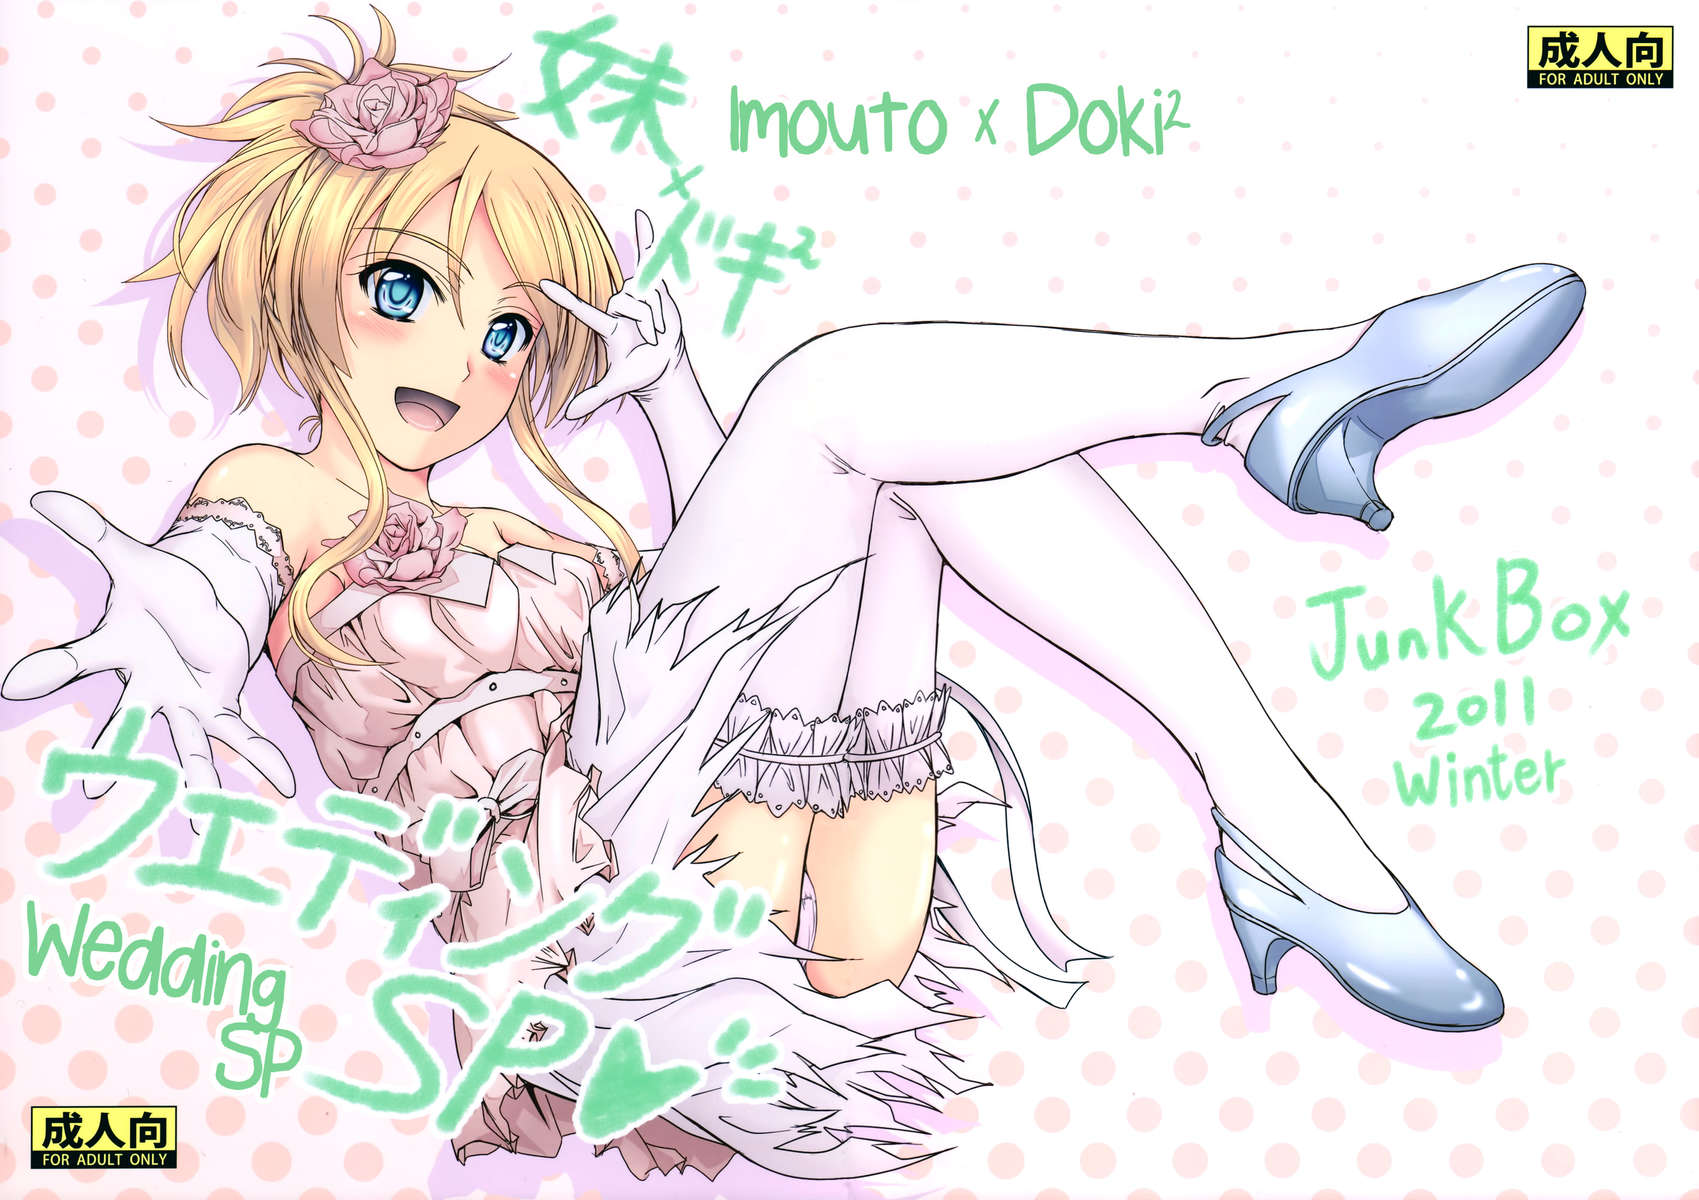 Imouto x Doki2 Wedding SP